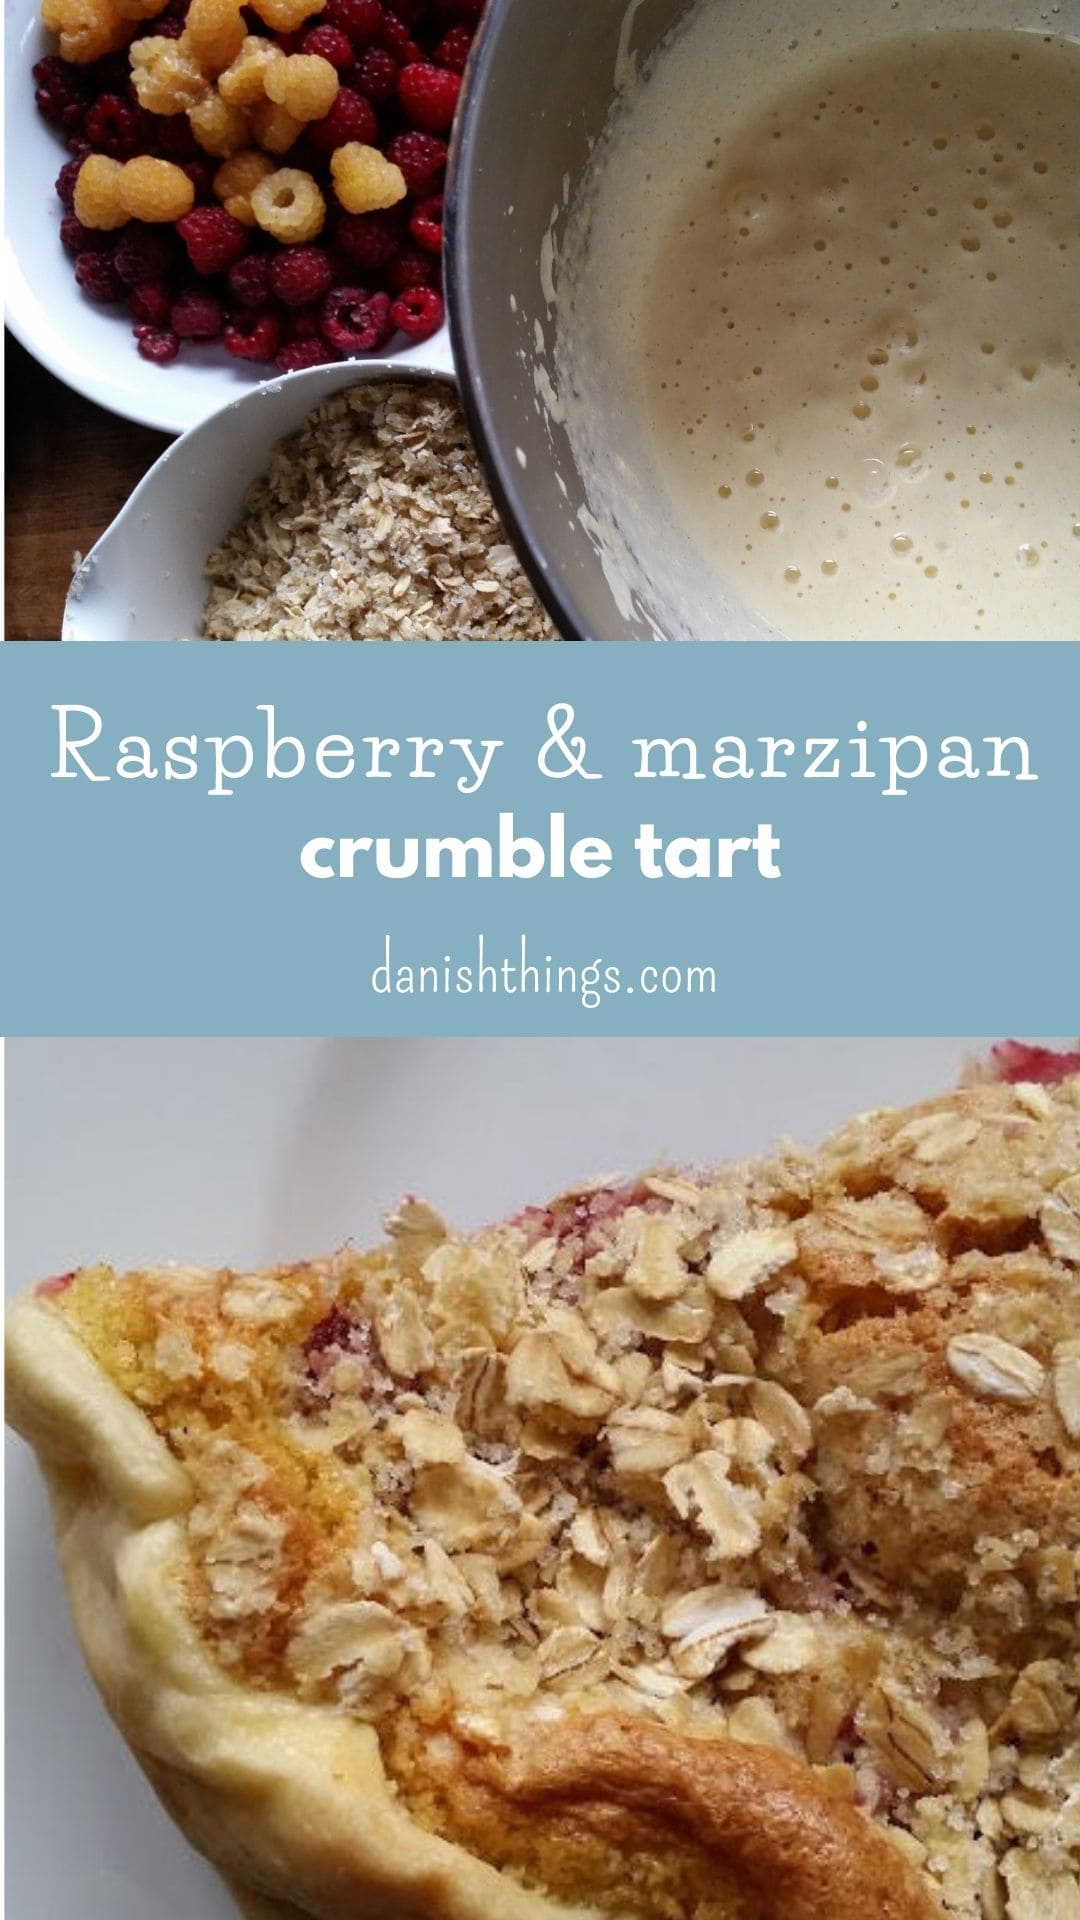 Make an easy raspberry tart with marzipan and oar crumble - find the recipes at danishthings.com © Christel Parby #DanishThings #pie #tart #pastry #shortcrustpastry #raspberry #raspberrypie #raspberrytart #raspberries #marzipan #marzipanfilling